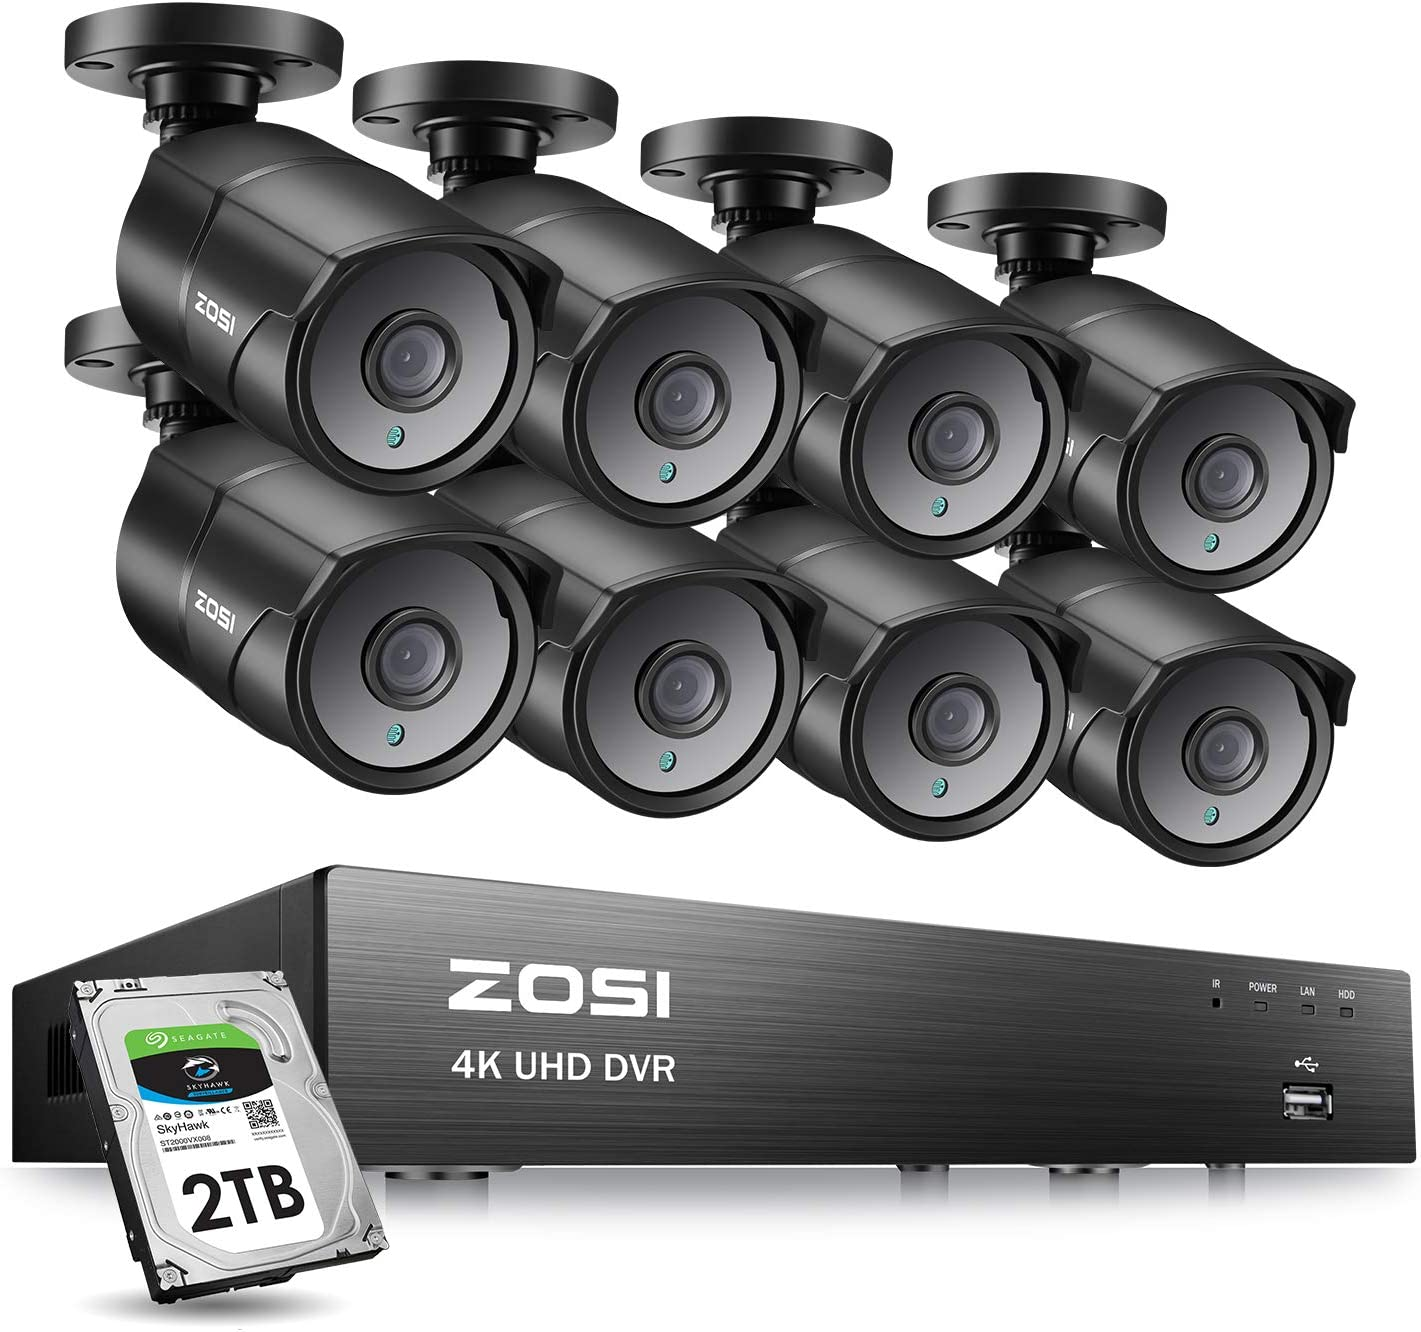 ZOSI Ultra HD 4k Security 8 Camera System, H.265 4K 8 Channel Surveillance DVR Recorder with 8 x 4K 8MP CCTV Bullet Camera Outdoor Indoor,100ft Night Vision, 2TB Hard Drive, Remote Access